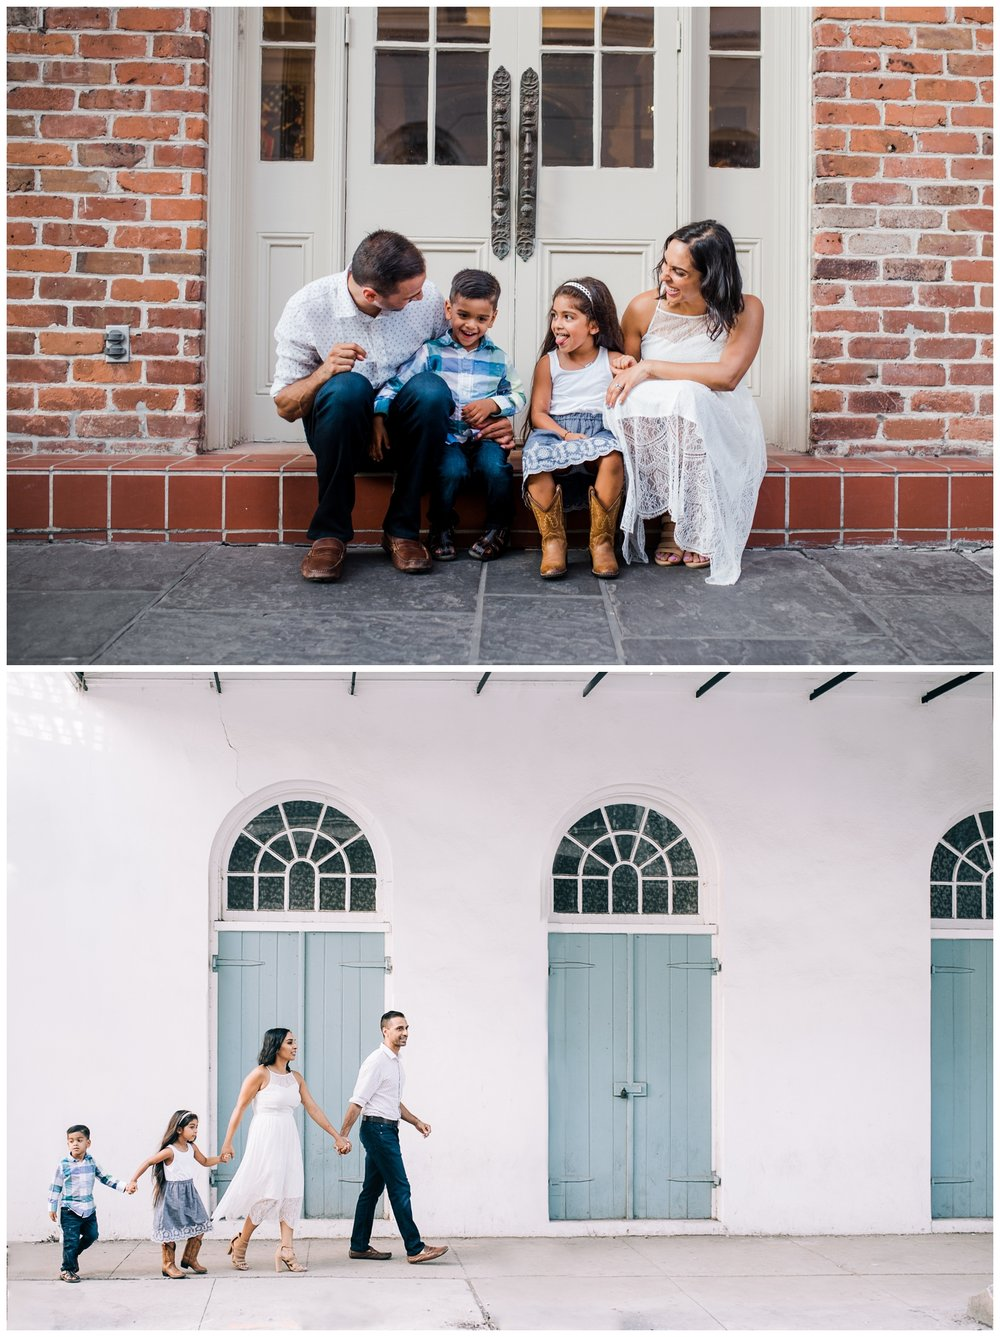 New-Orleans-family-photography- french-quarter-kallistia-photography_0006.jpg